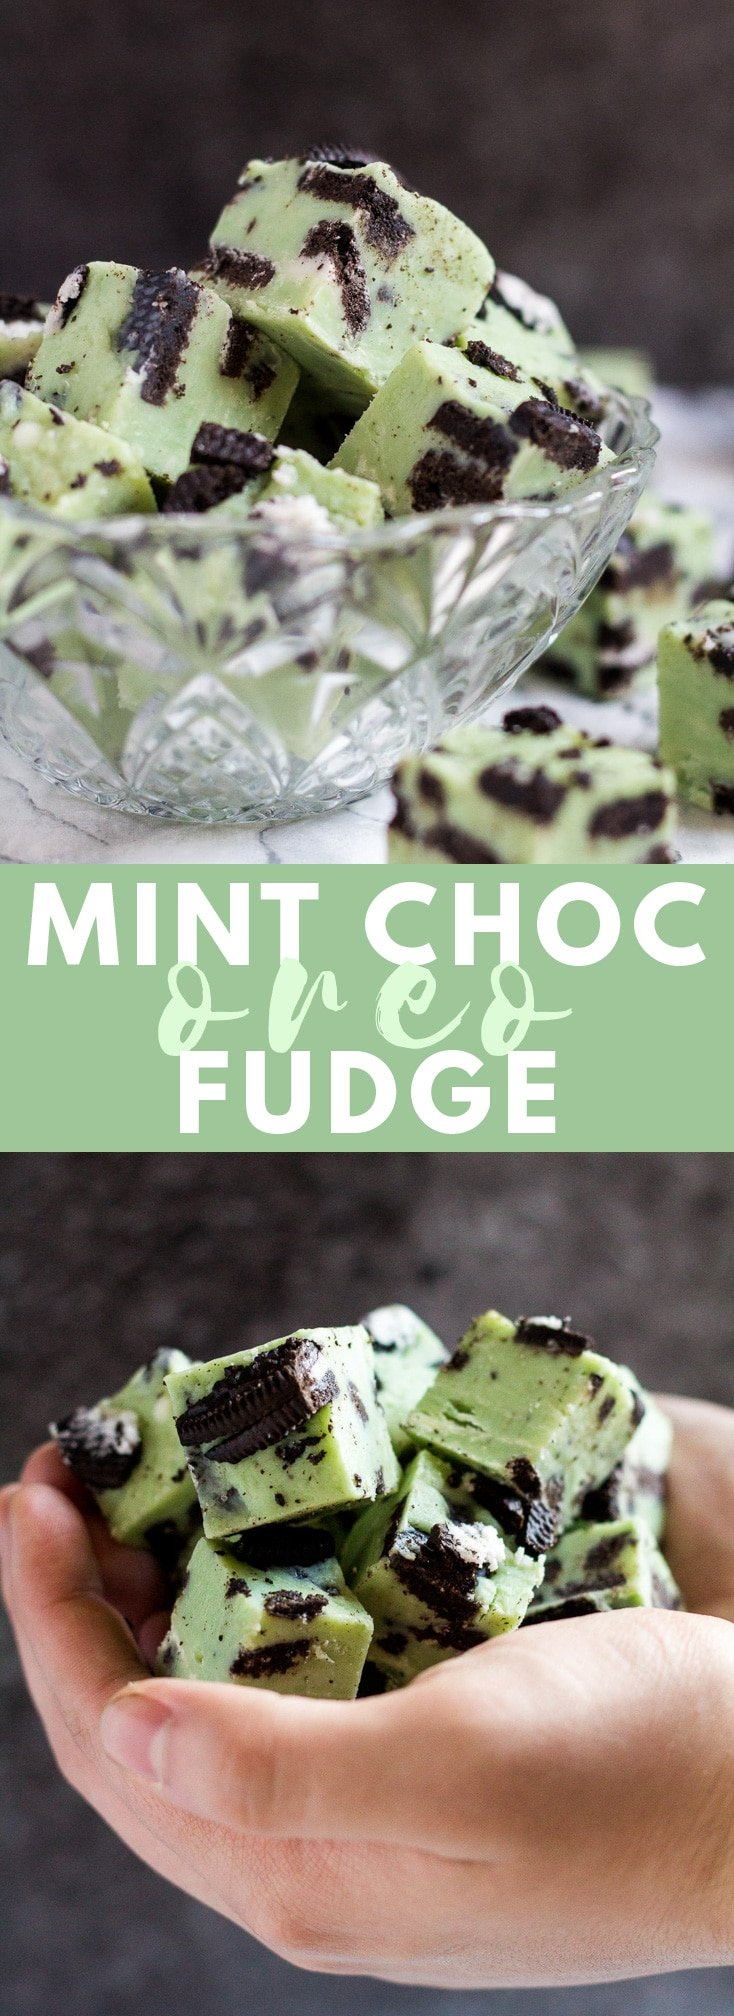 Mint Chocolate Oreo Fudge - Deliciously creamy mint white chocolate fudge that is loaded with flavour, stuffed full of Oreo cookies, and only requires 5 ingredients to make! #mintchocolate #oreo #fudge #recipe